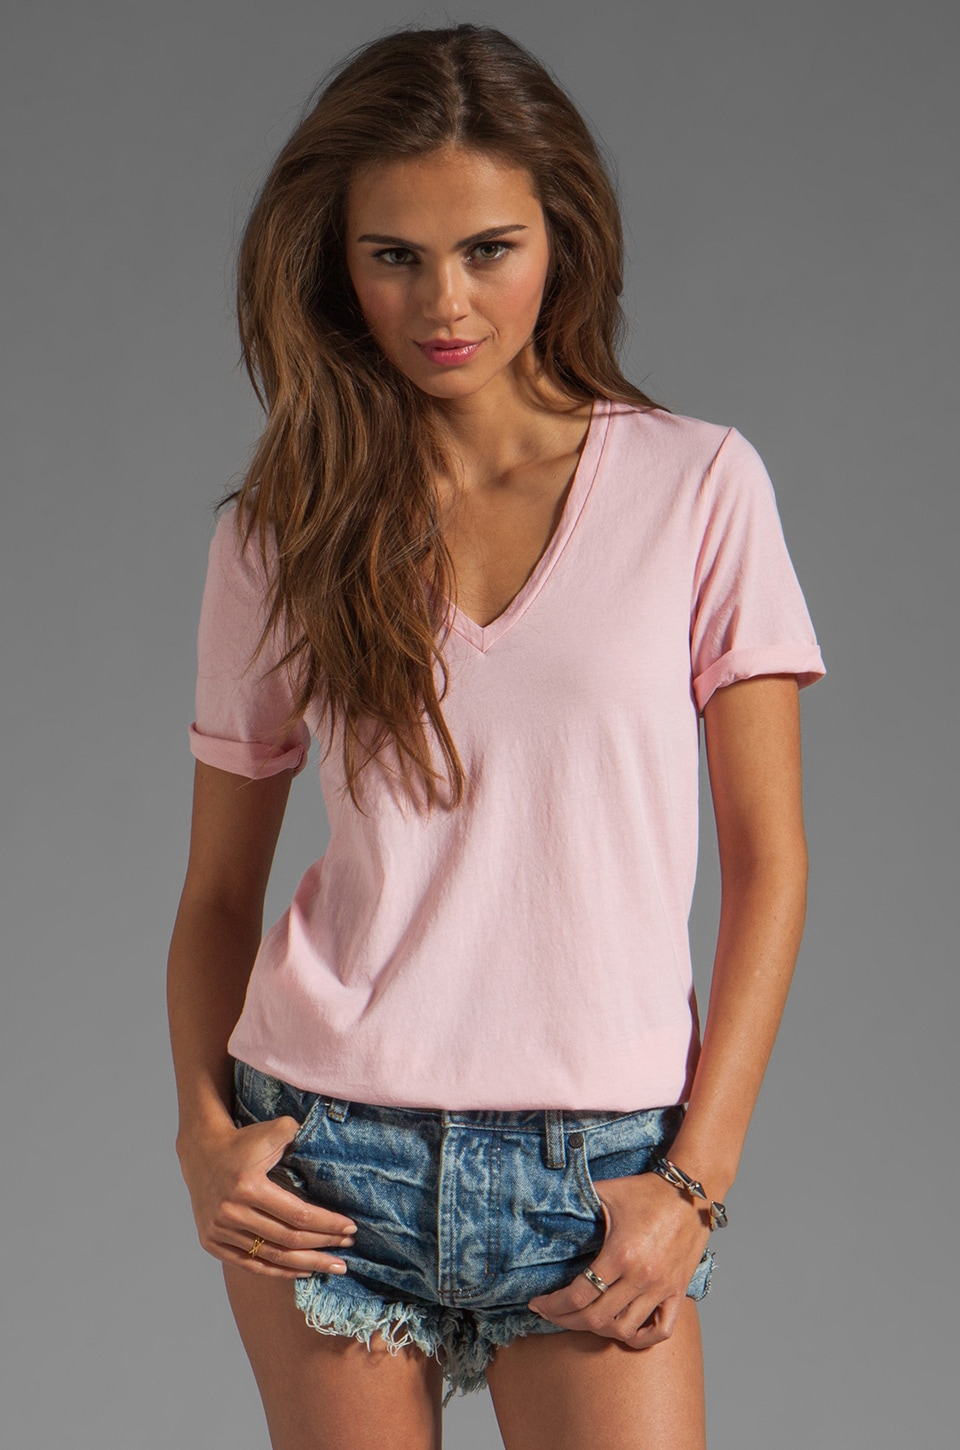 fLuXuS Perfect Tee in Blossom